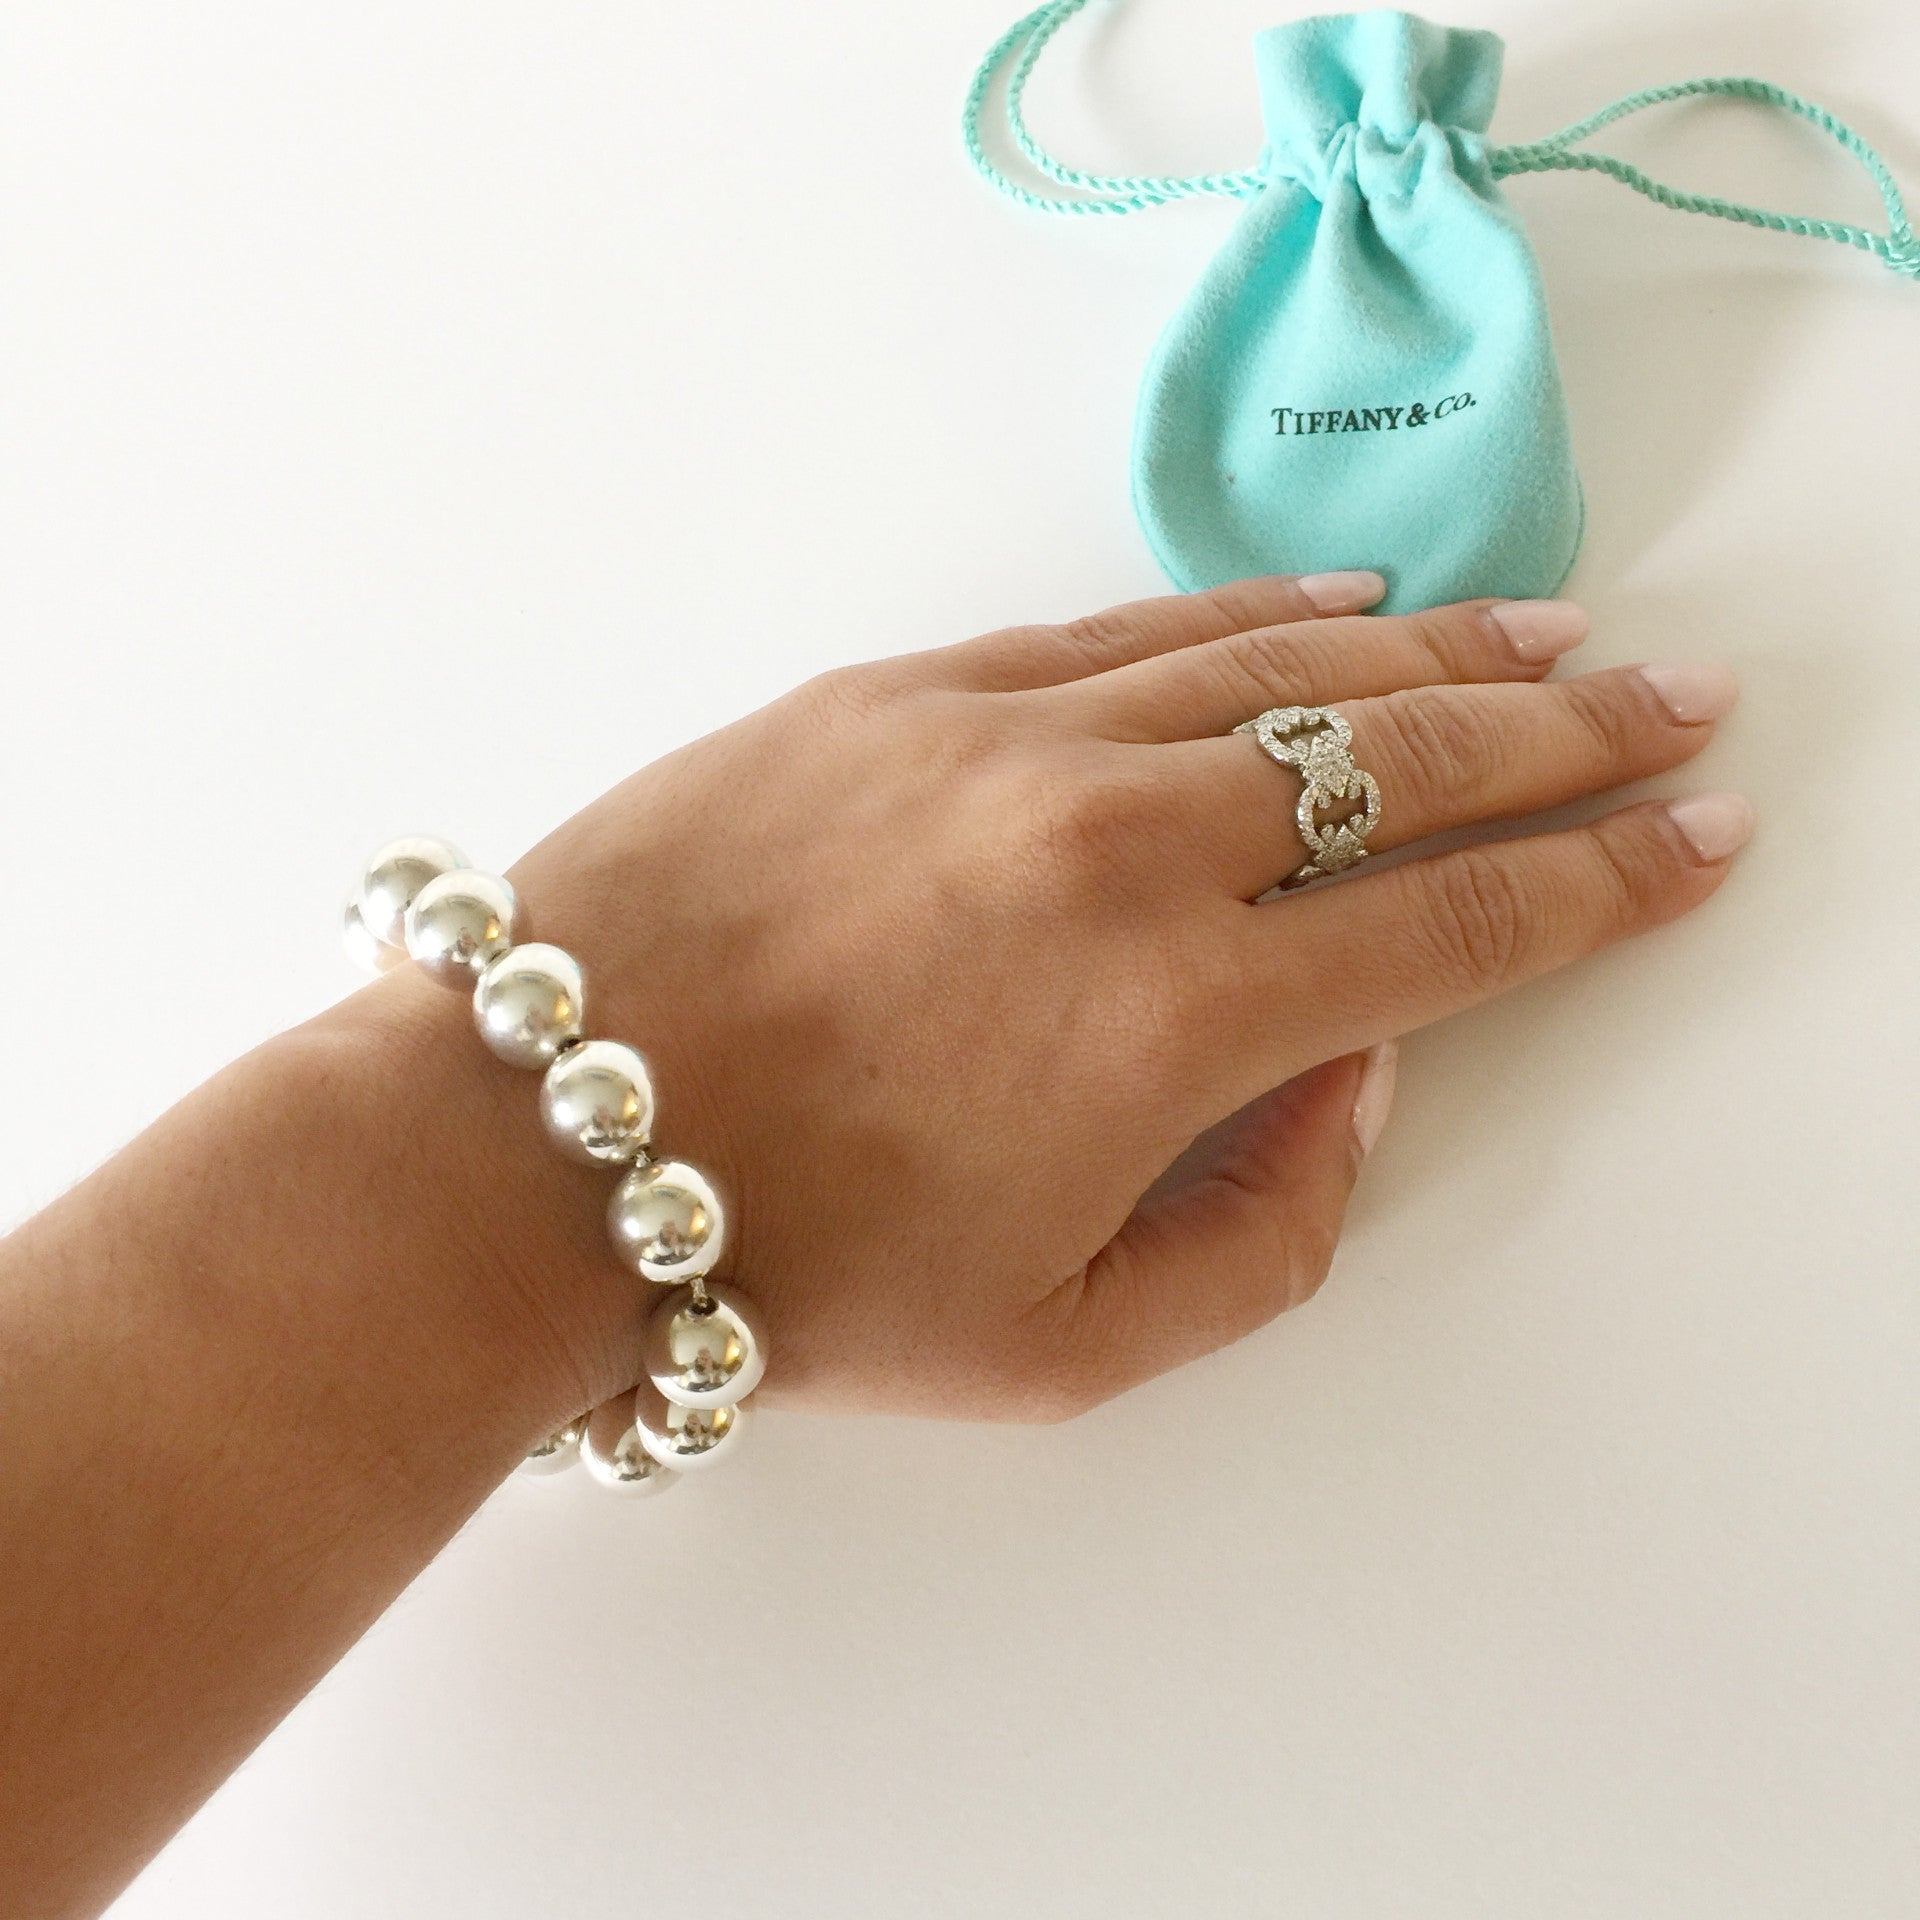 27de327ea Authentic TIFFANY & CO Large Bead Bracelet – Valamode